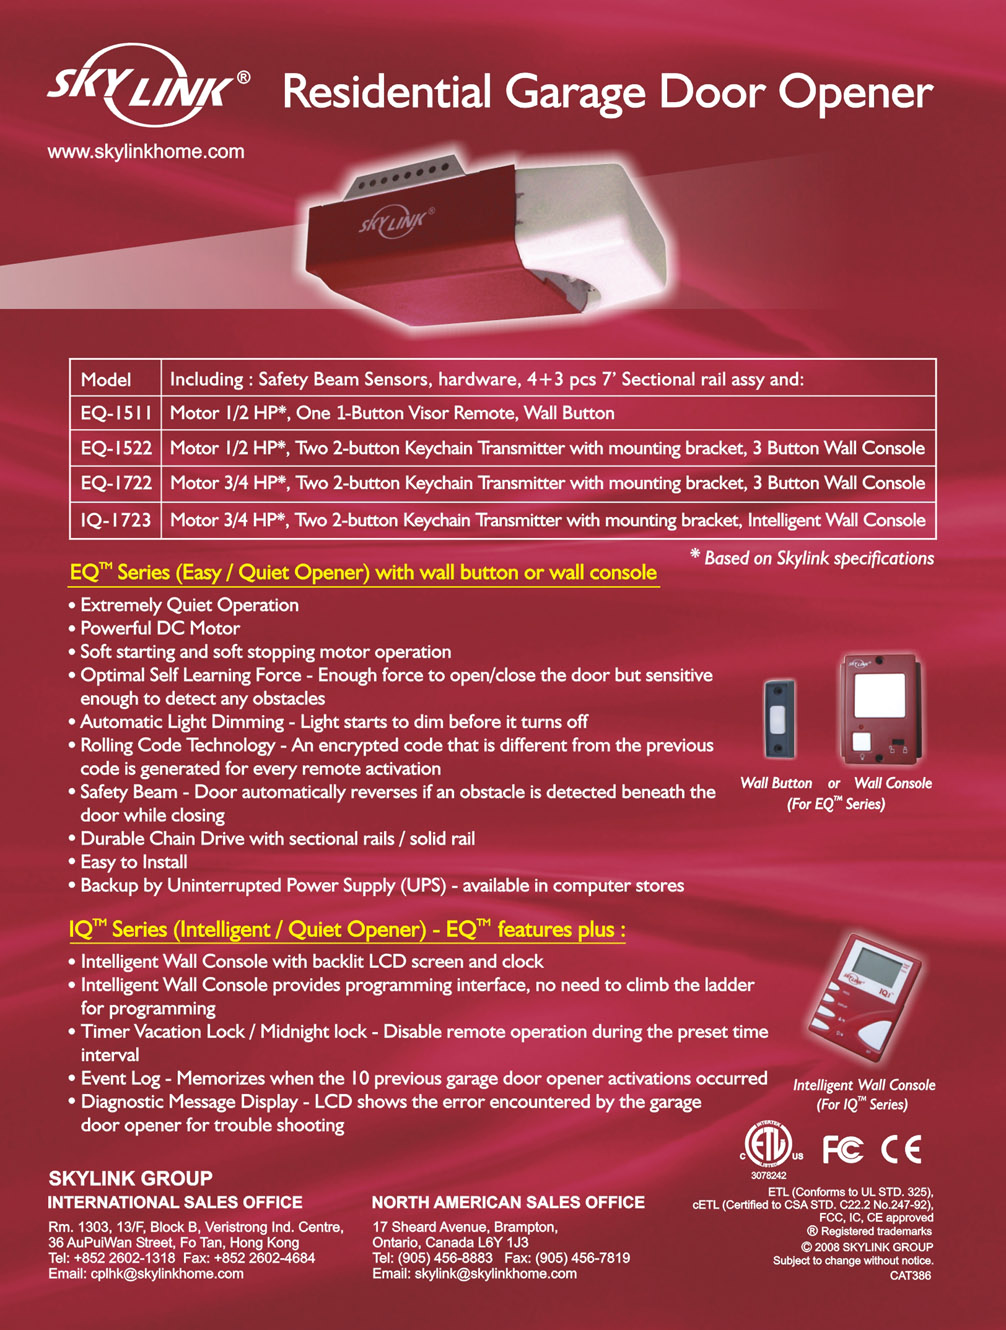 Promotional Materials Skylinkhome